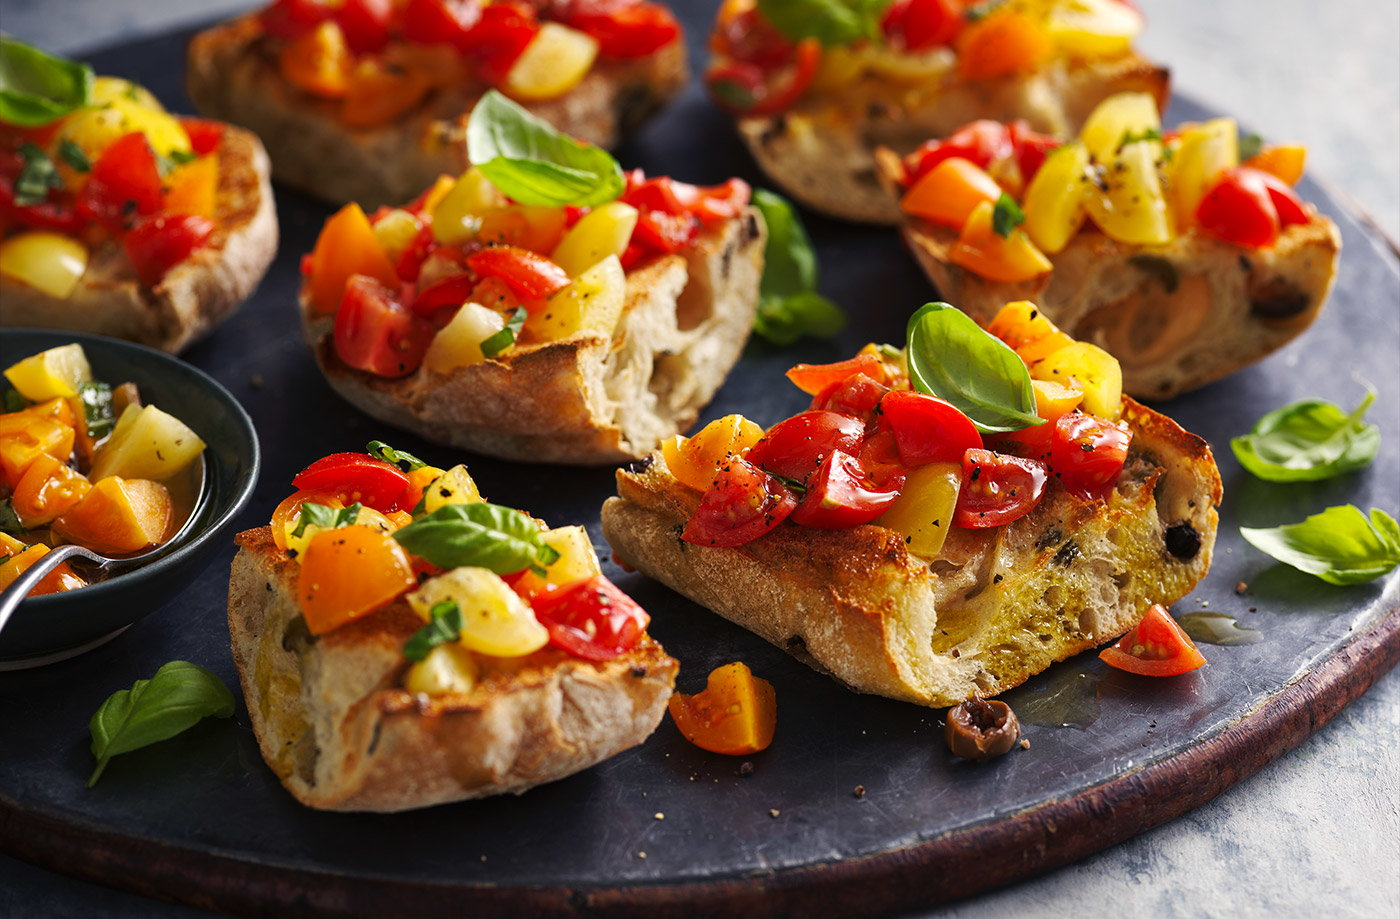 Tomato and basil bruschetta recipe